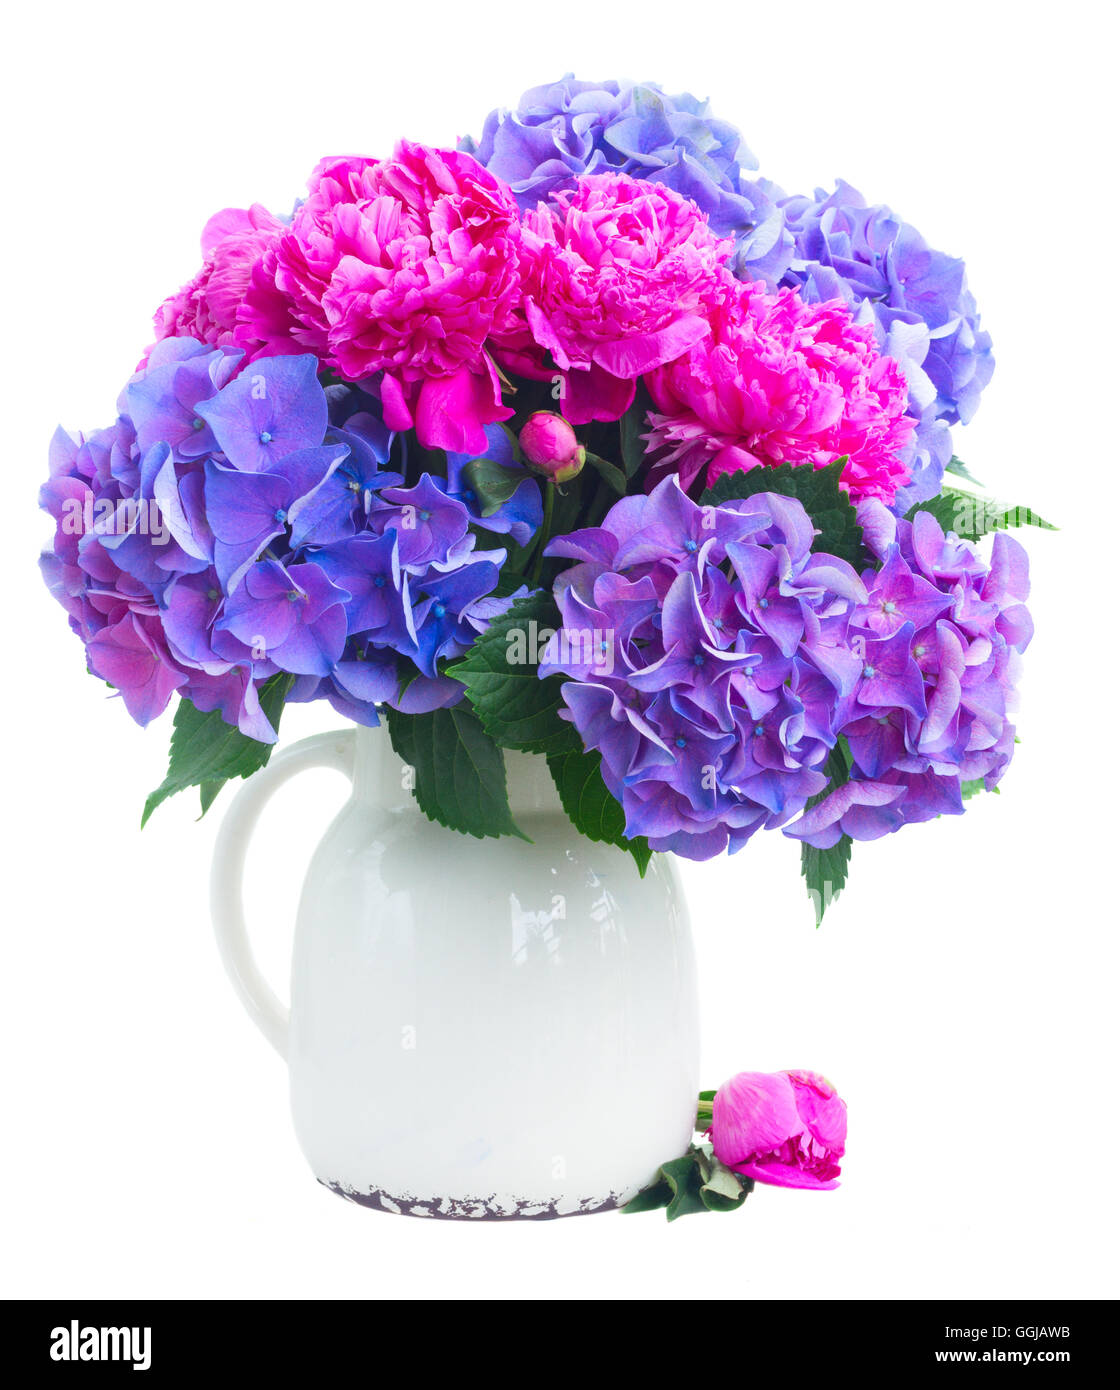 Bright pink and blue flowers - Stock Image